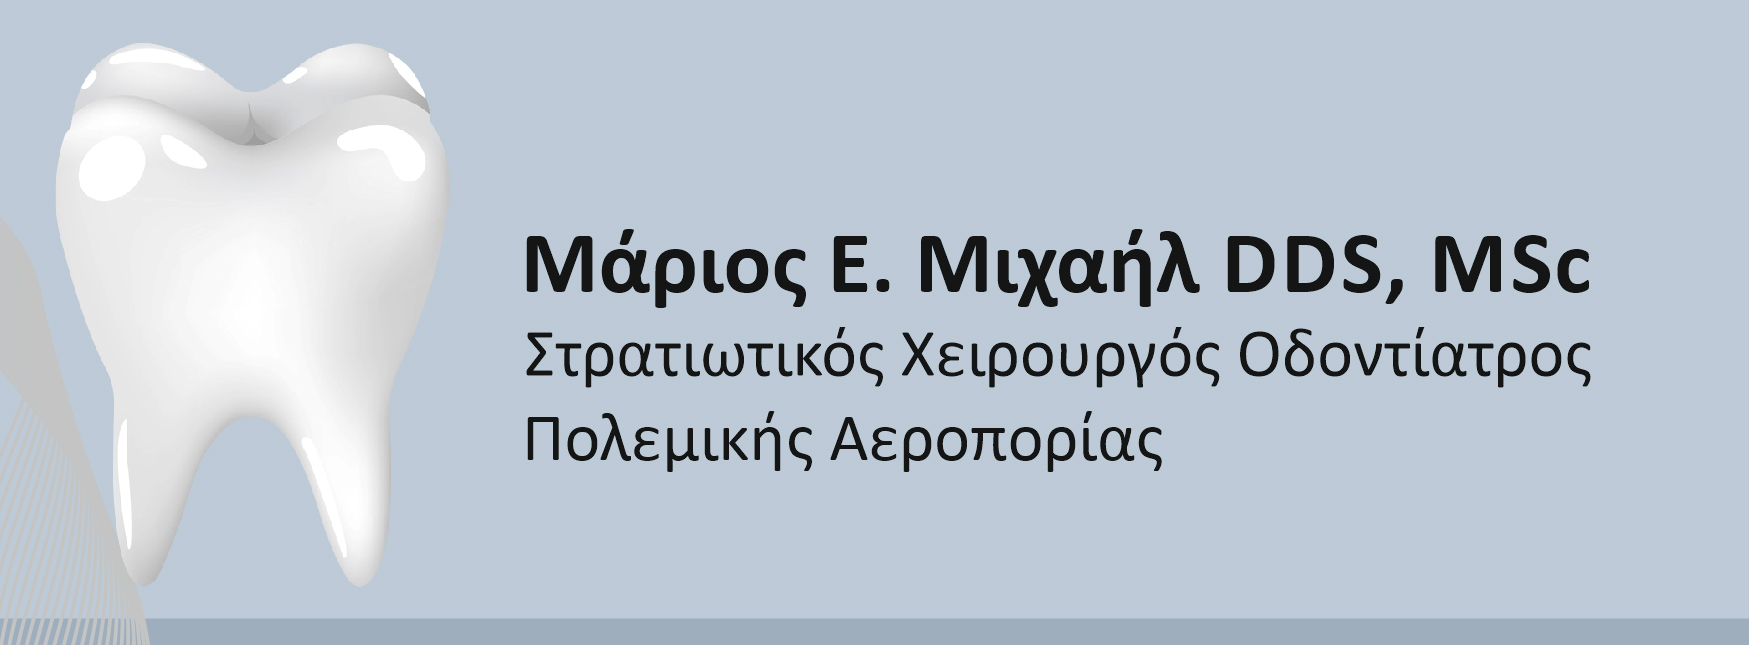 Στρατιωτικός Οδοντίατρος